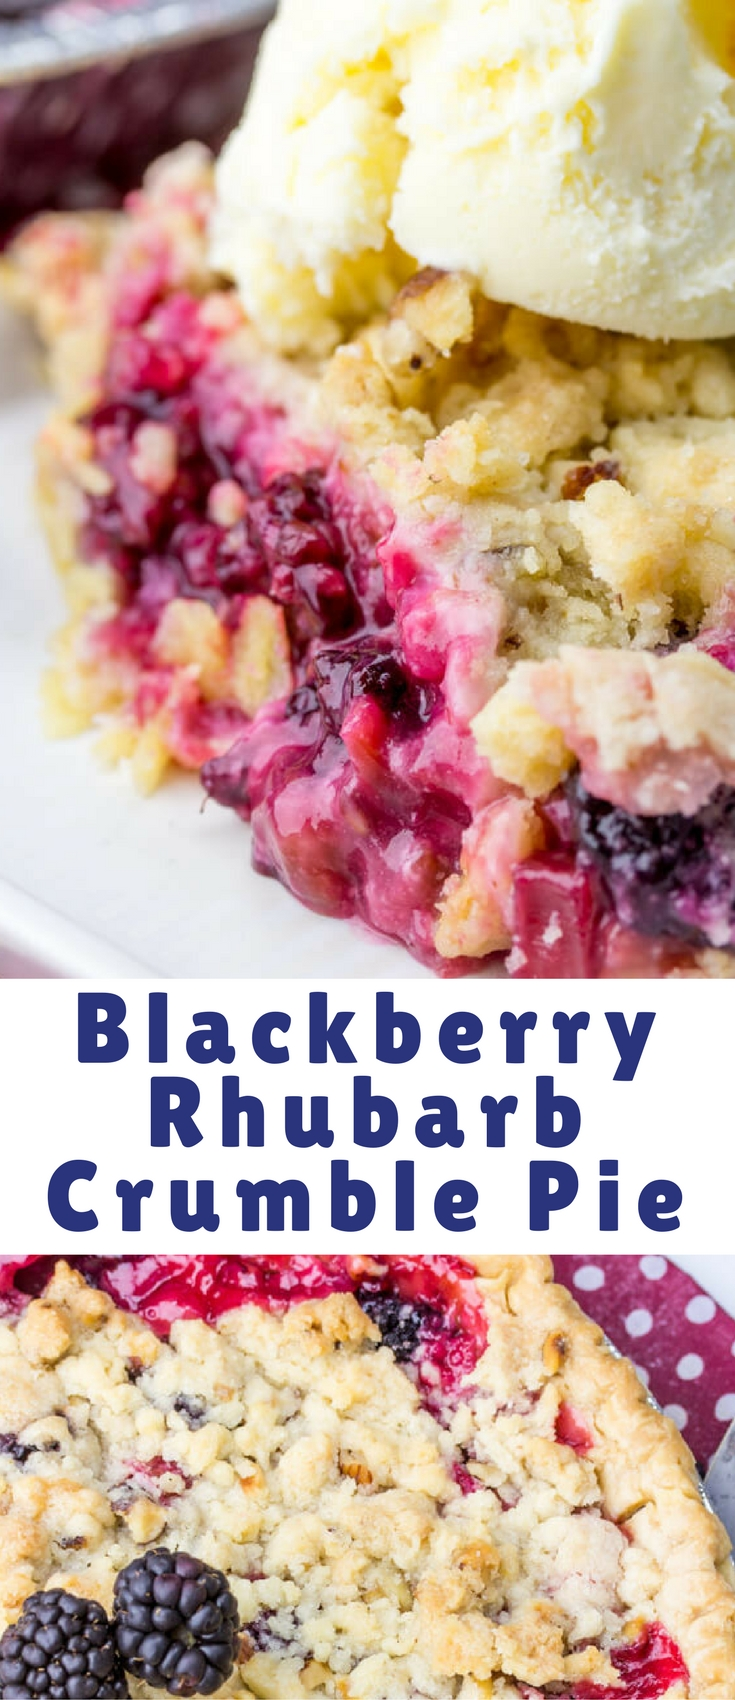 A delicious, tart and sweet pie this Blackberry Rhubarb Crumble Pie is the perfect mixture of flavors that just burst and excite your tastebuds.